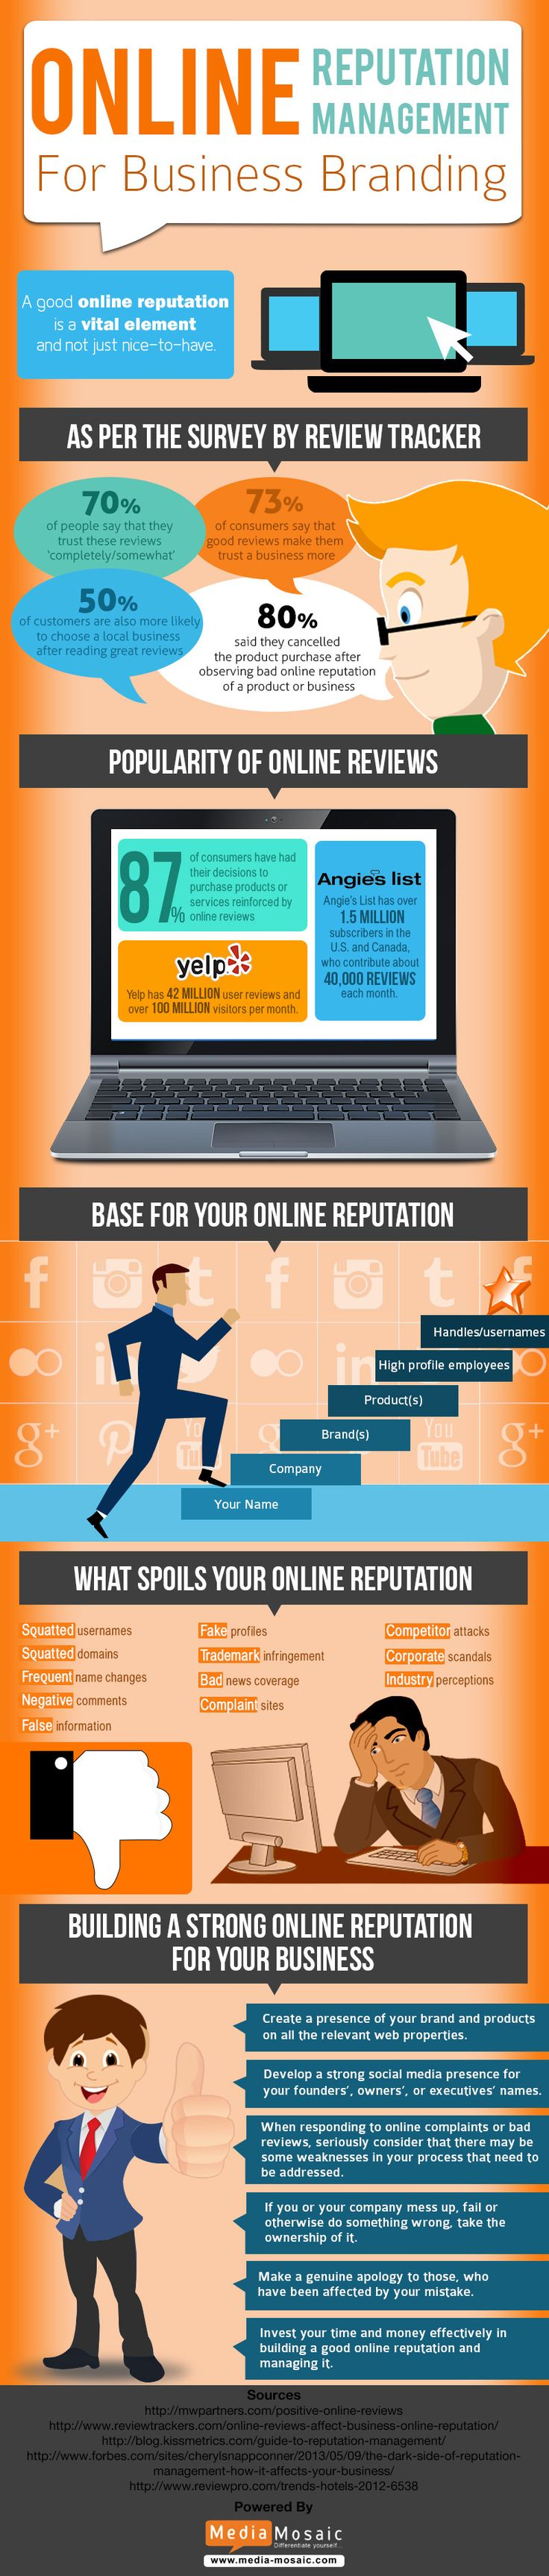 Online Reputation Management for Business Branding #infographic #Business #Branding